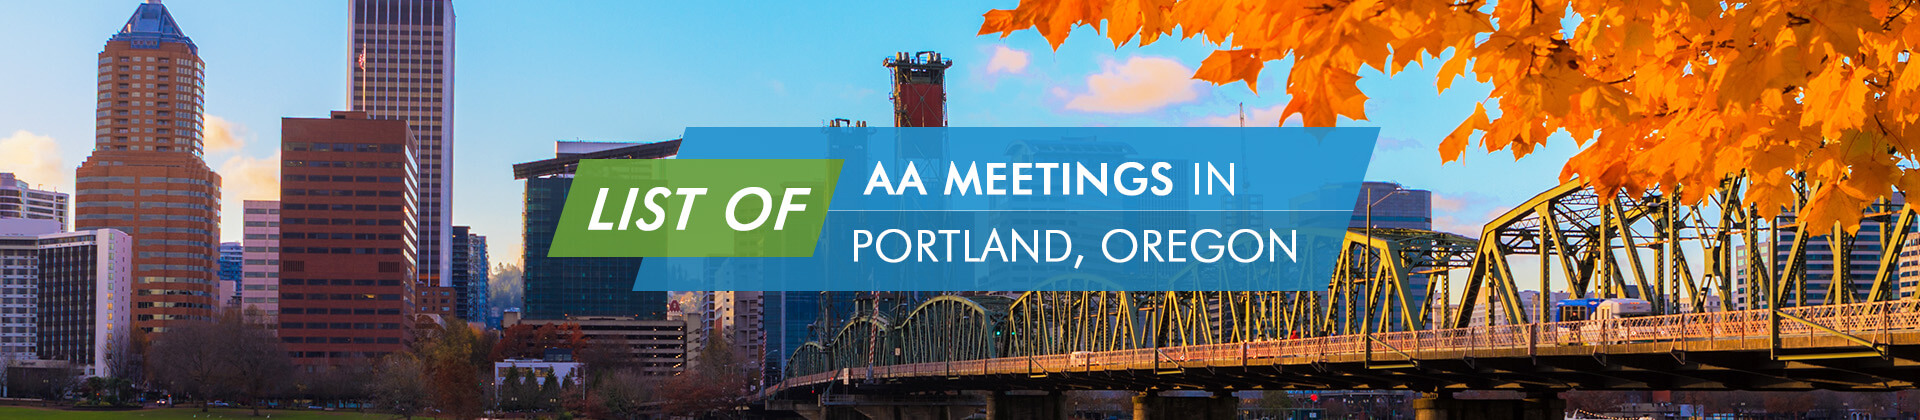 AA Meetings Portland Oregon